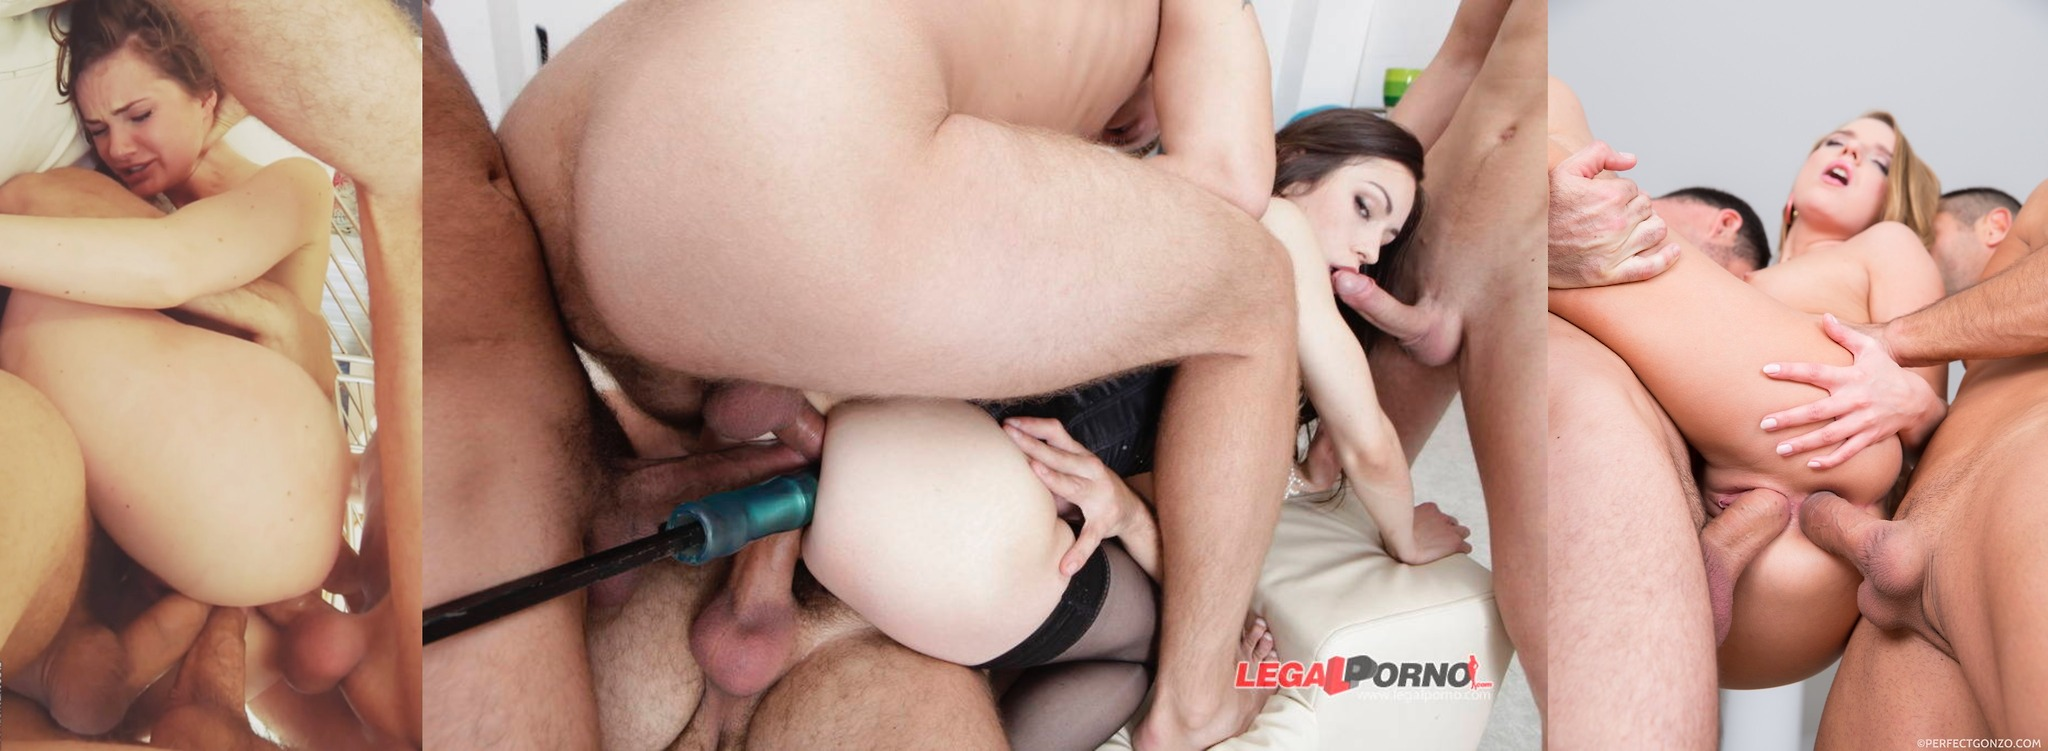 Xxx multiple deepthroat gangbang